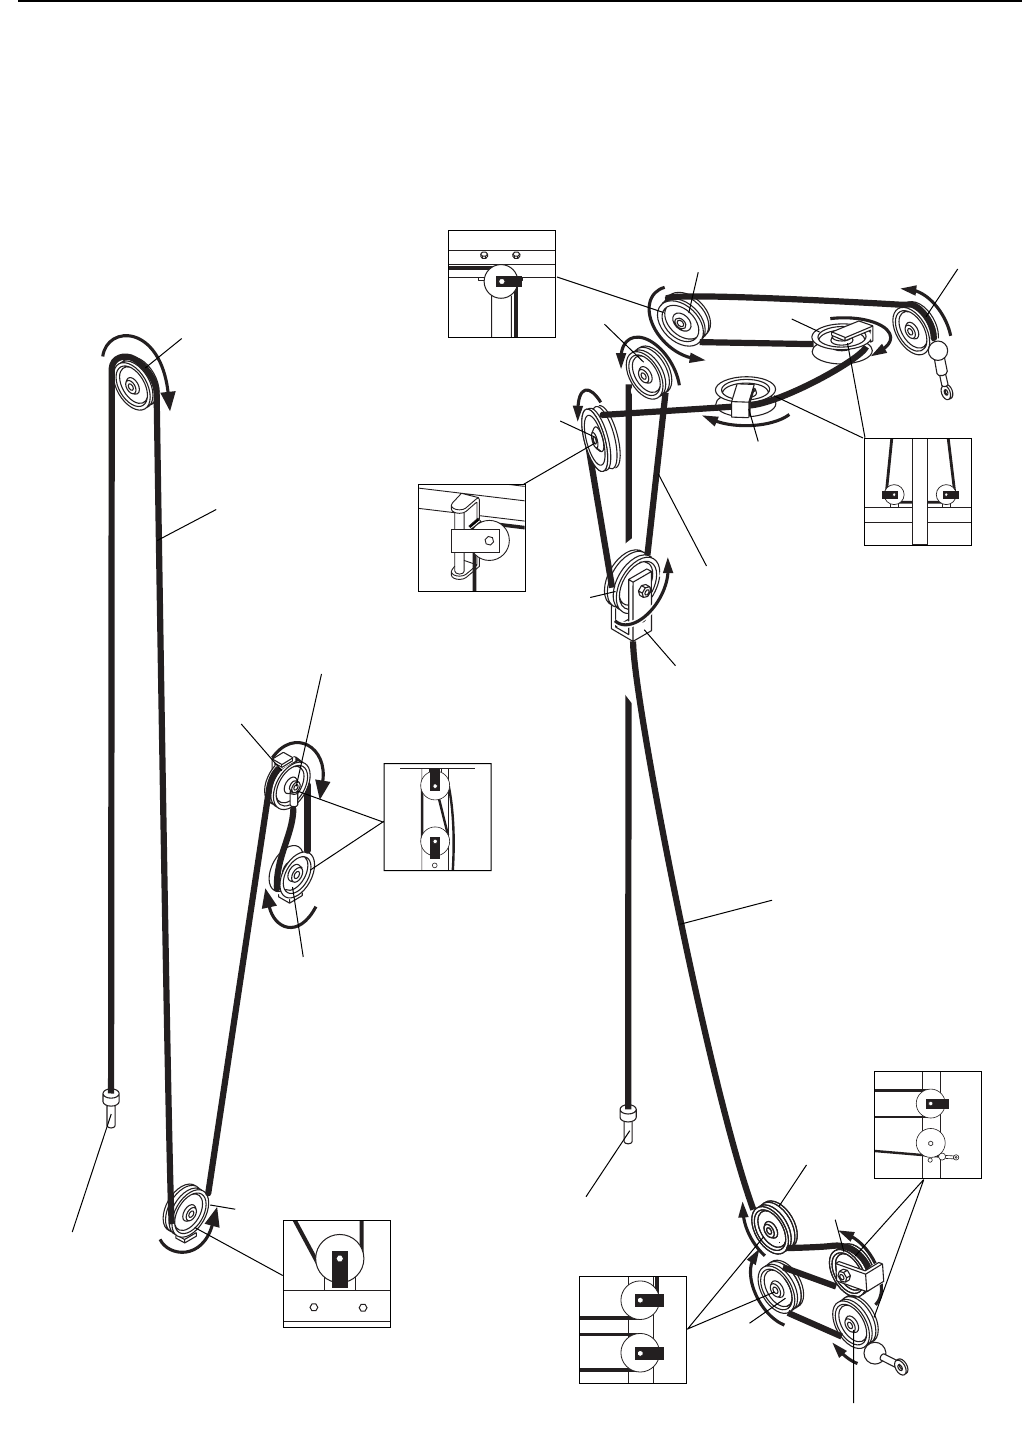 Weider 8530 CABLE DIAGRAM